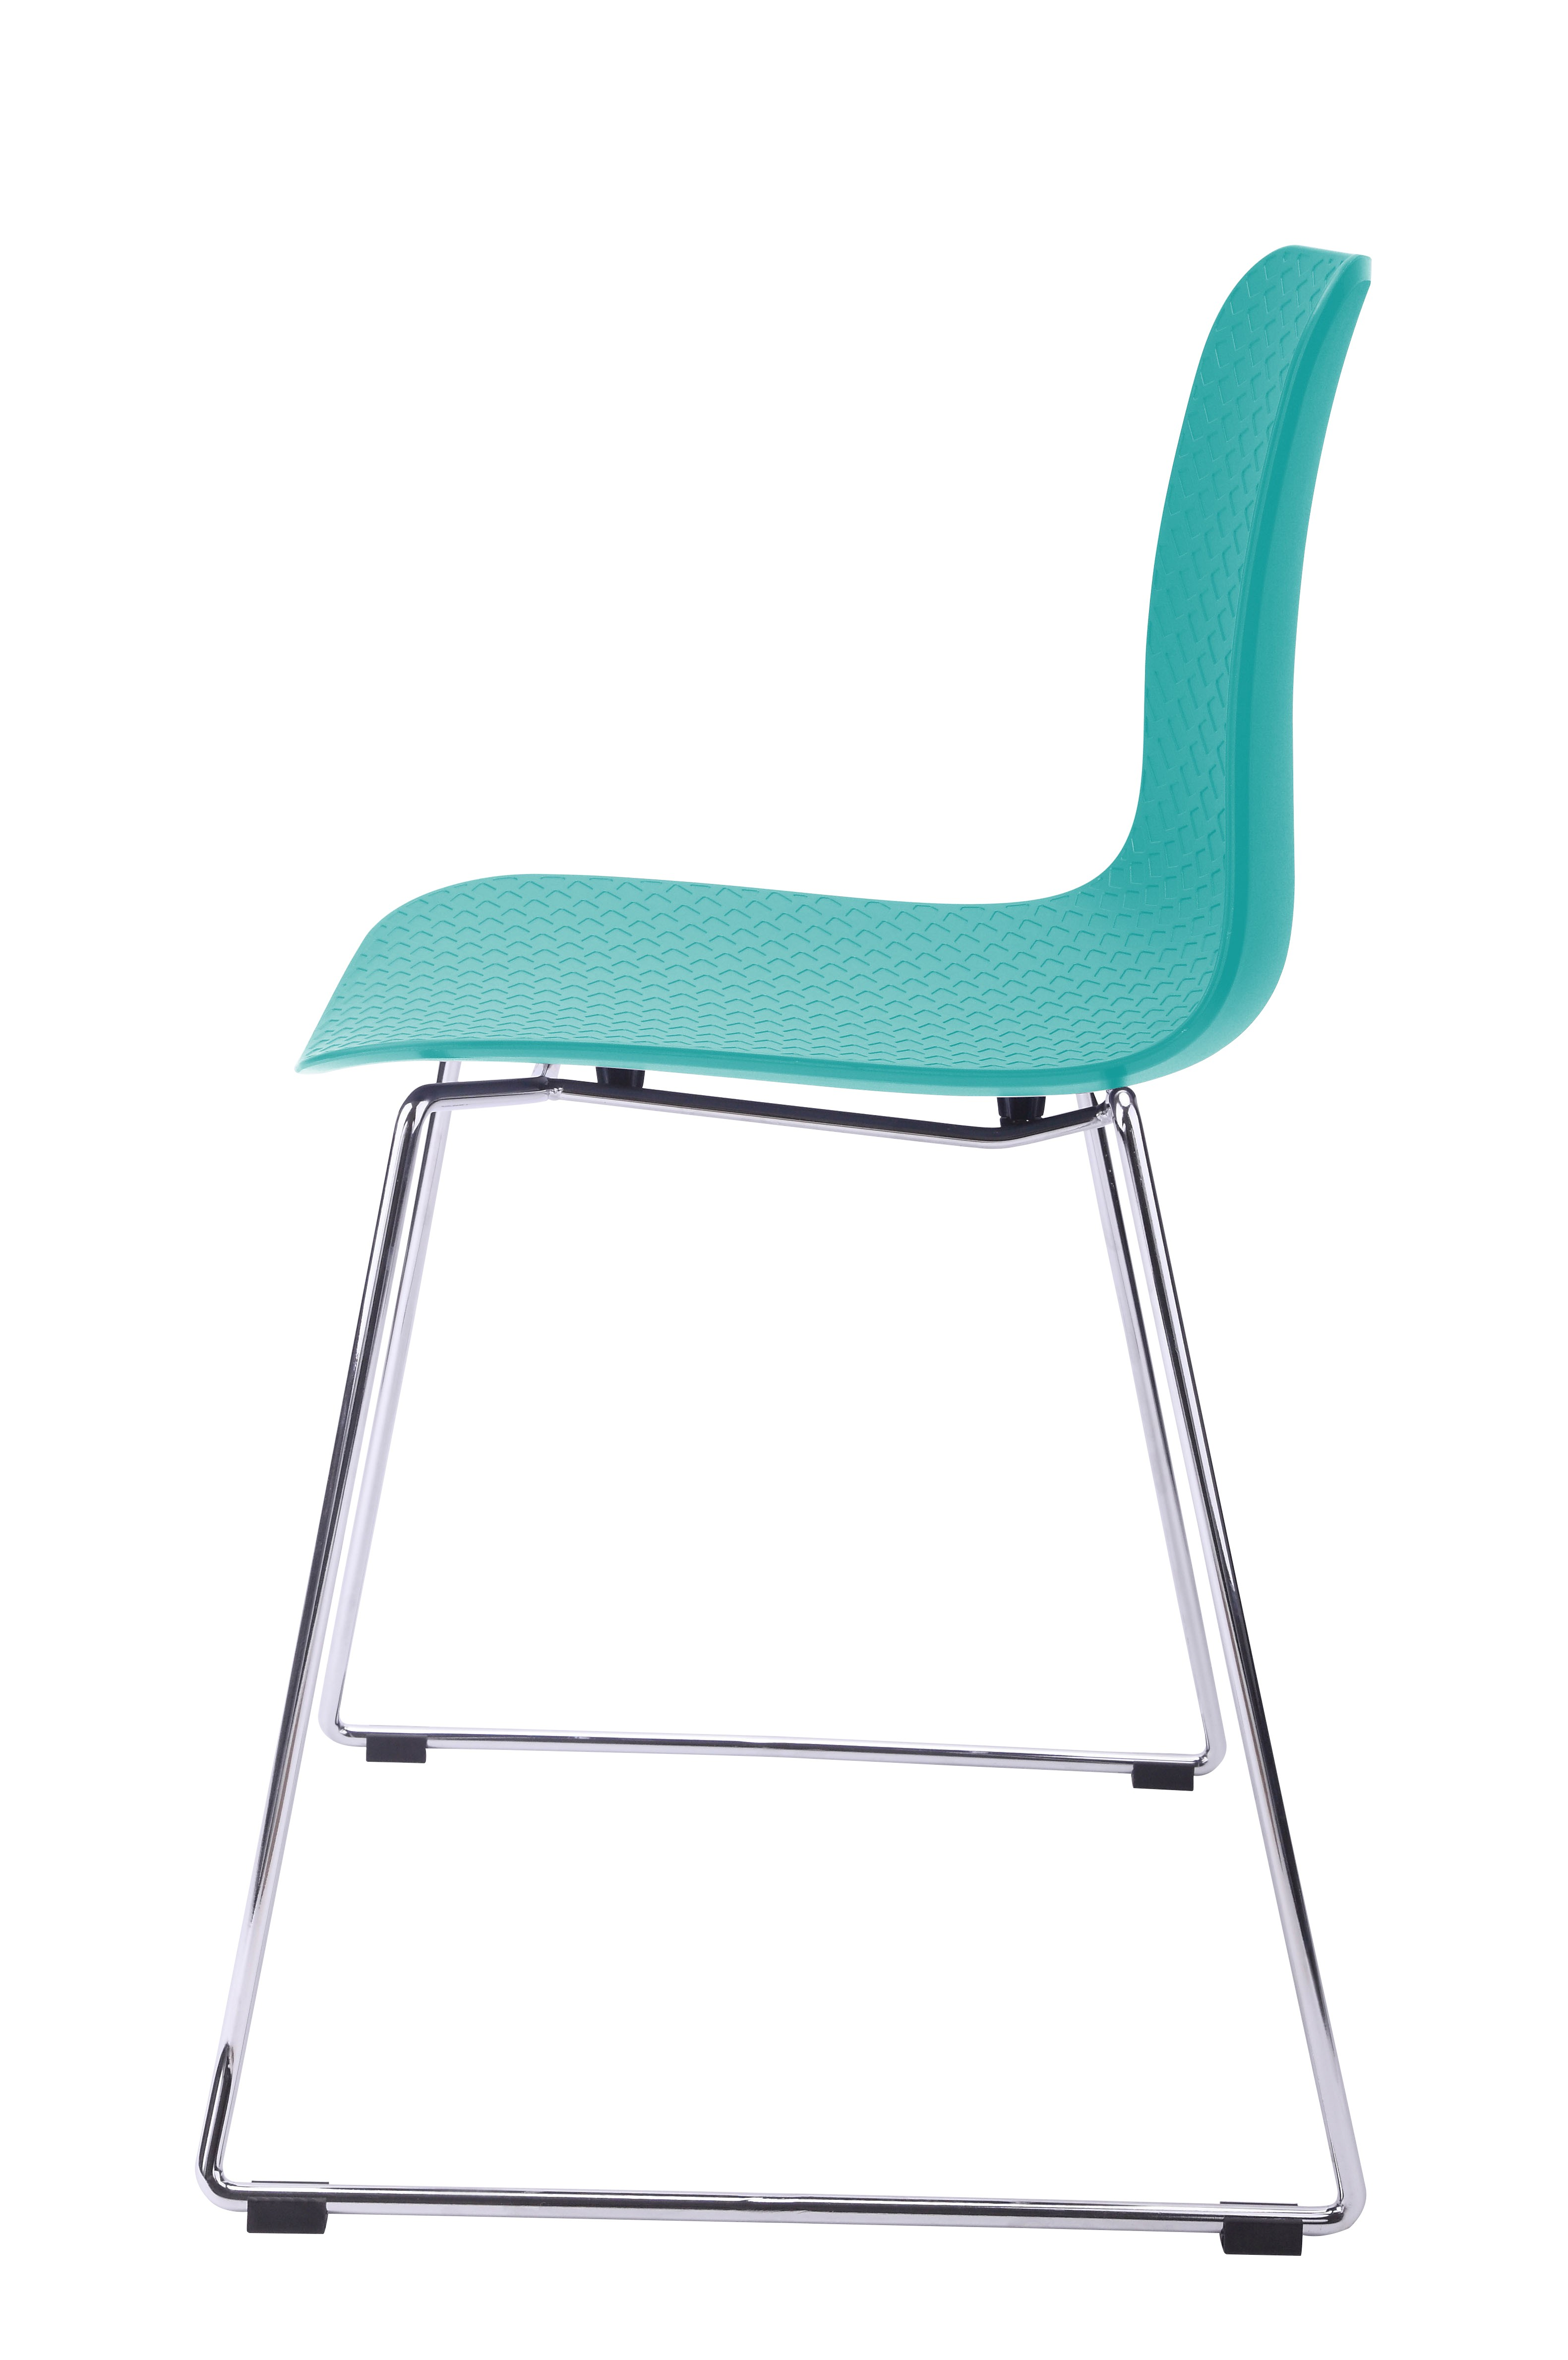 Plastic chair metal legs - With Your Purchase Receive At No Cost